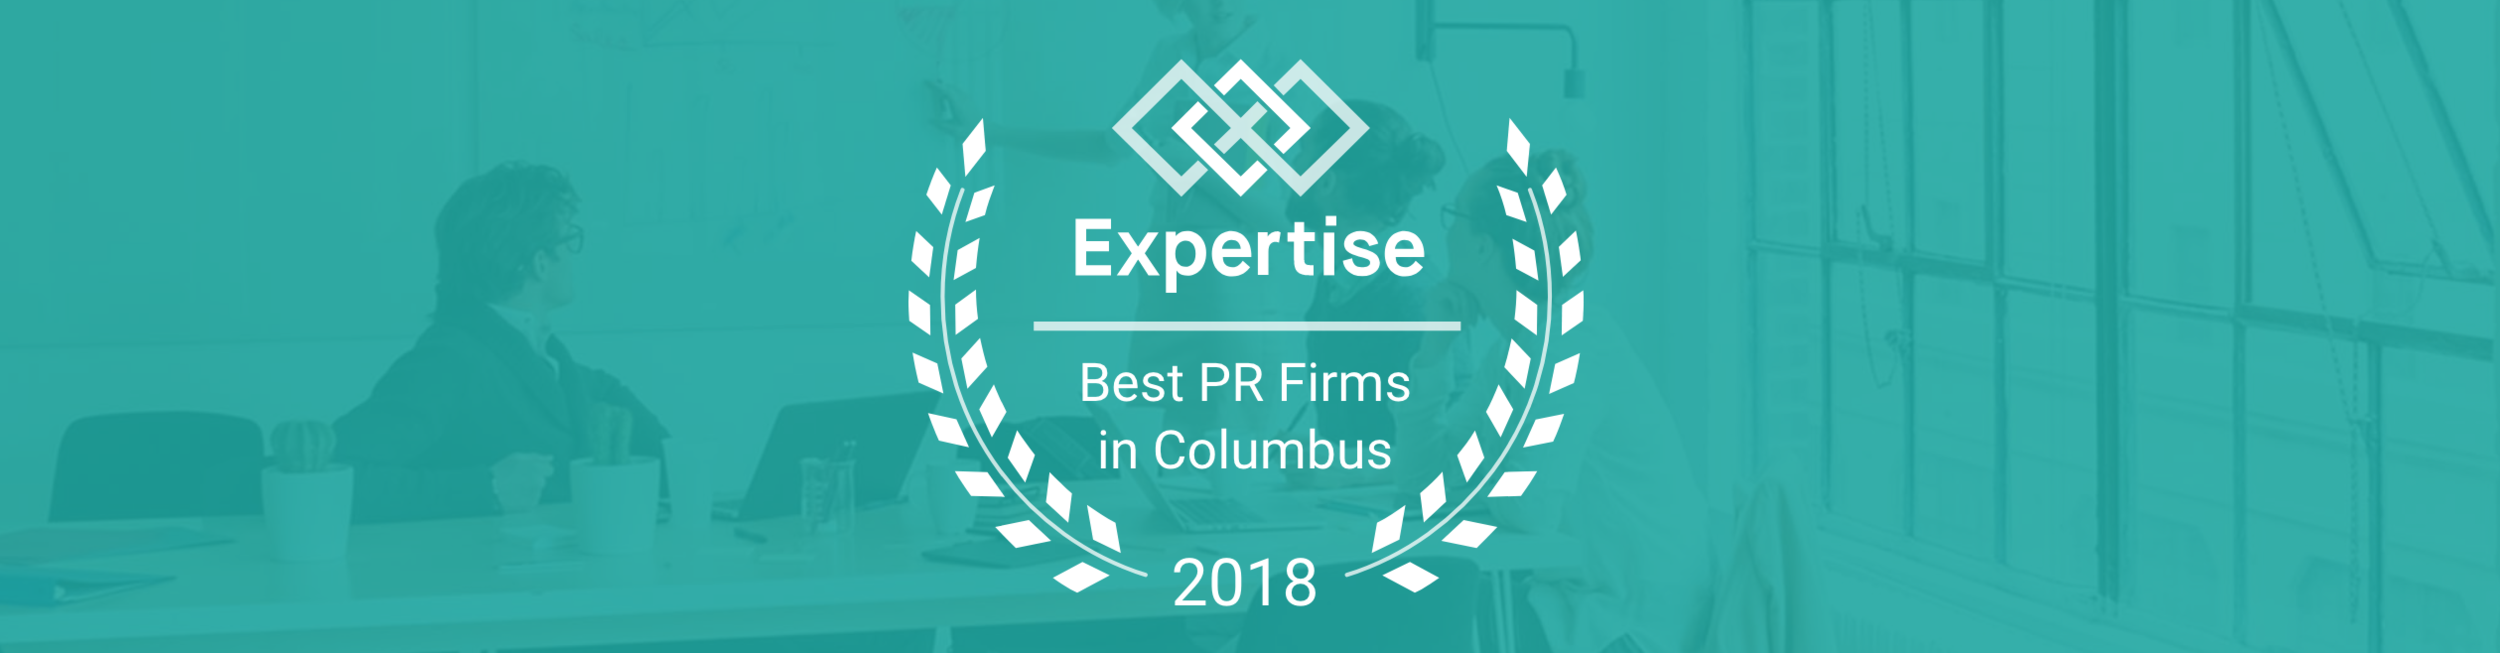 expertise-top-pr-firms-2018.png